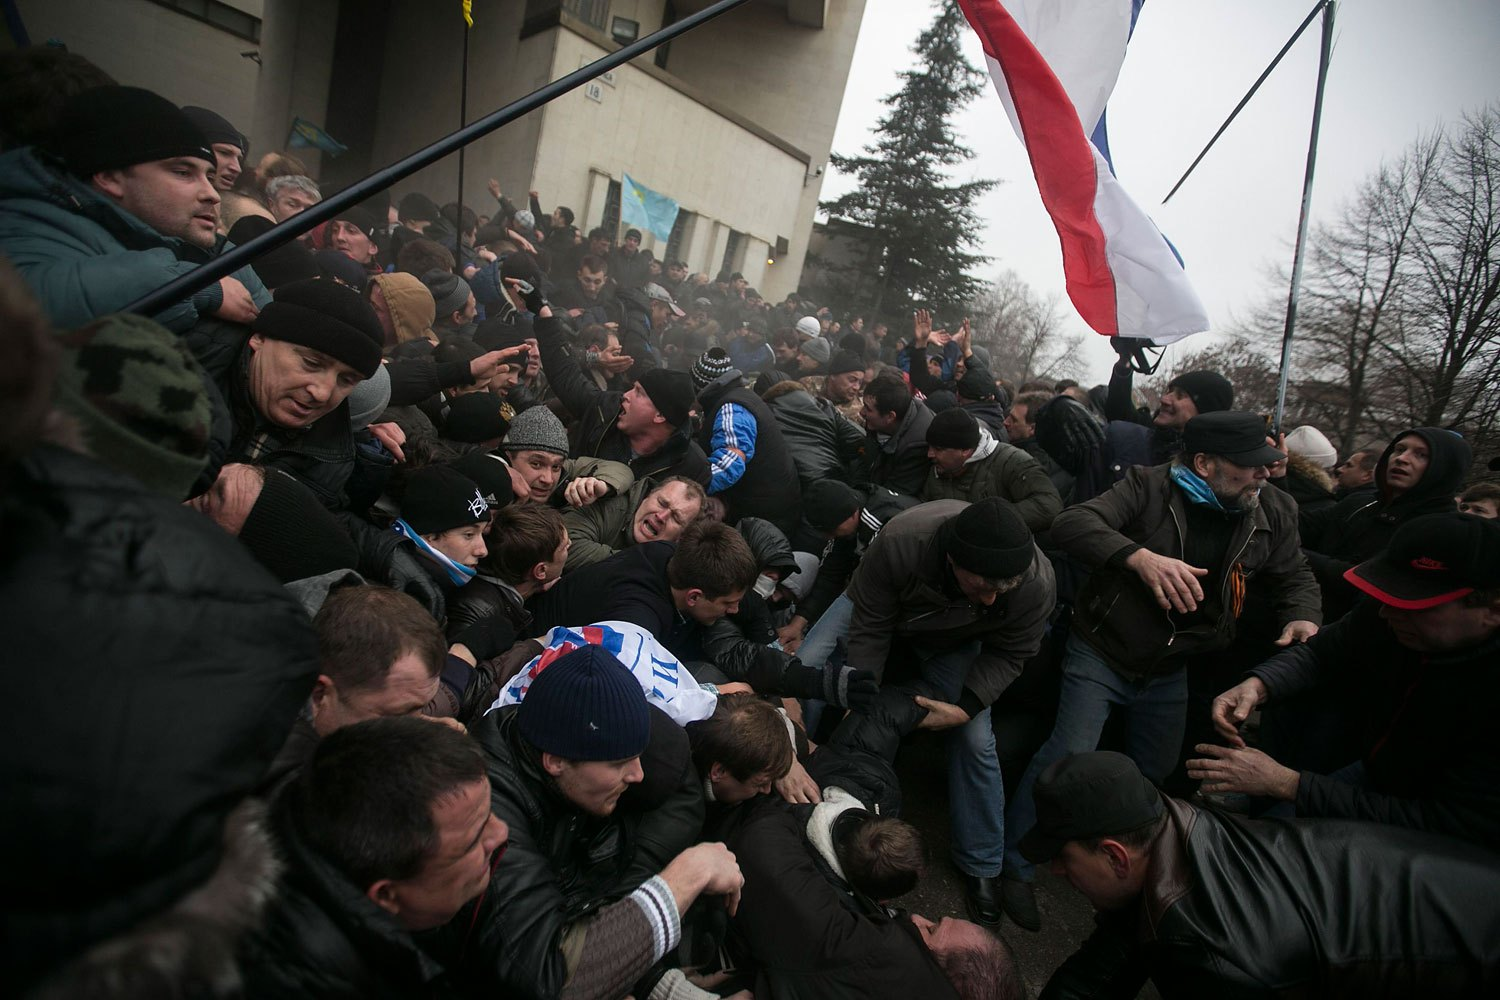 Ukrainian men help pull one another out of a stampede beneath a flag of Crimea during clashes at rallies held by ethnic Russians and Crimean Tatars near the Crimean parliament building in Simferopol Feb. 26, 2014.